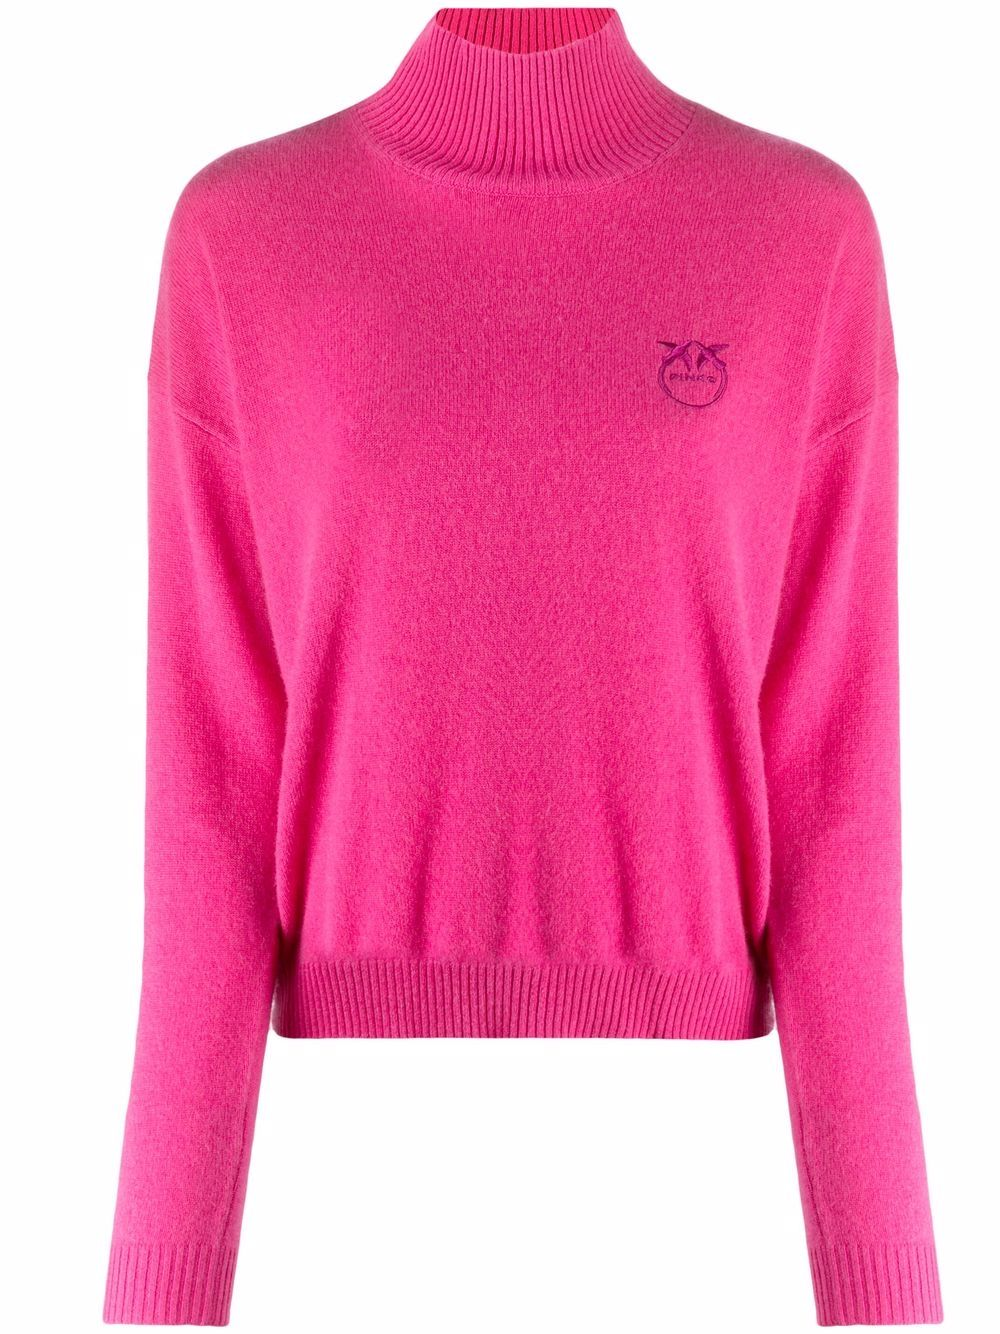 SHOPPING ON LINE PINKO PULLOVER IN PURO CACHEMIRE DOLCETTO NEW COLLECTION WOMEN'S FALL/WINTER 2022